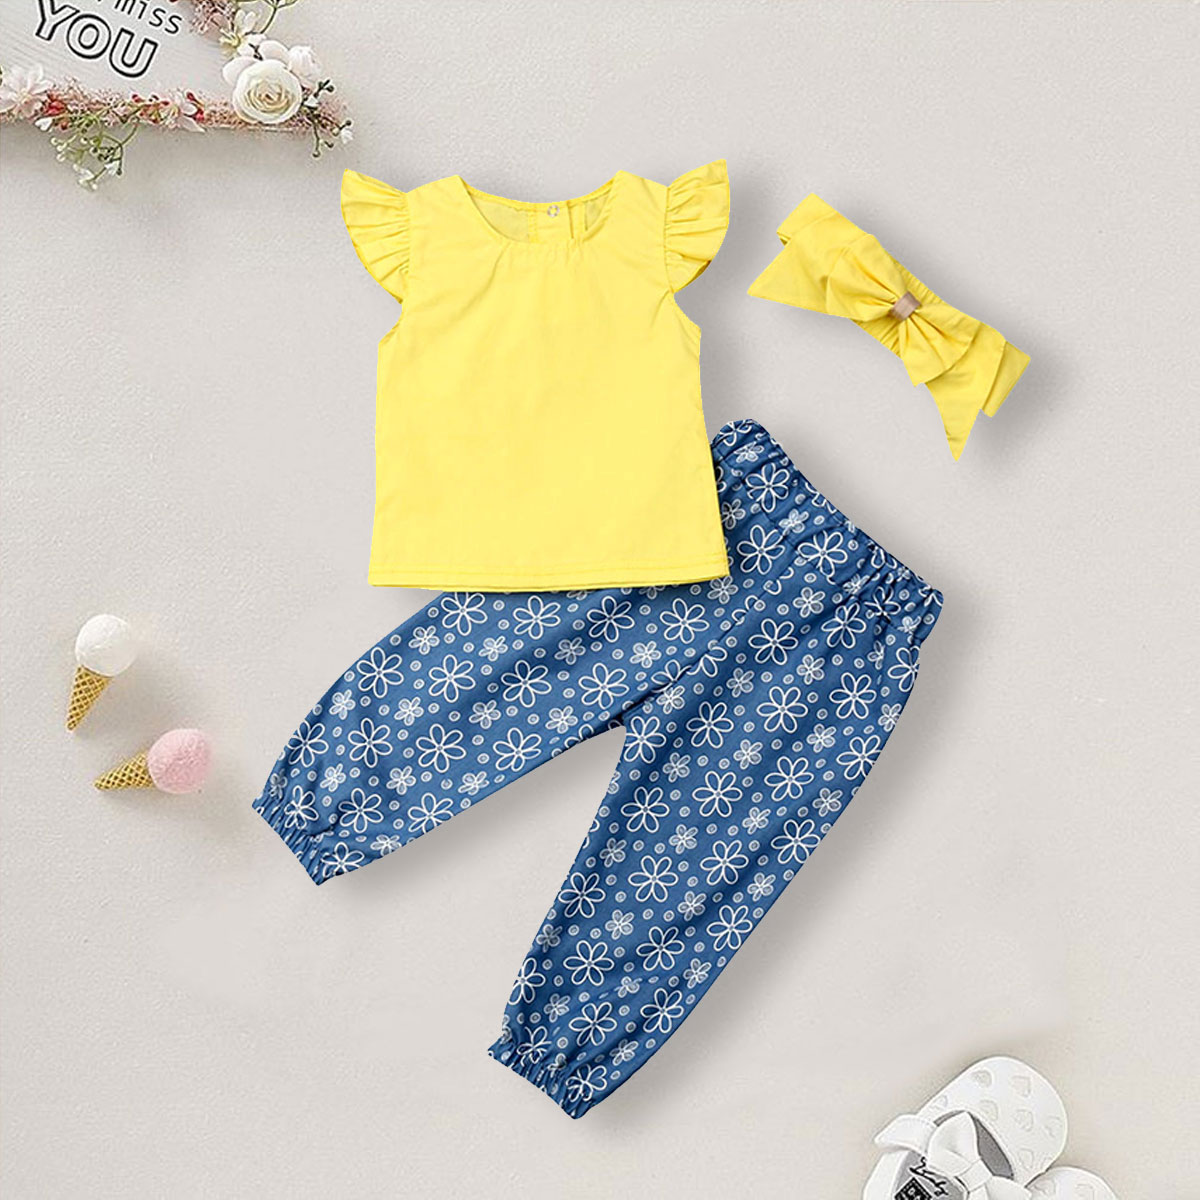 3pcs Short Top Girl Infant Toddler Clothing Sleeves Short Sleeve Outfits Suit